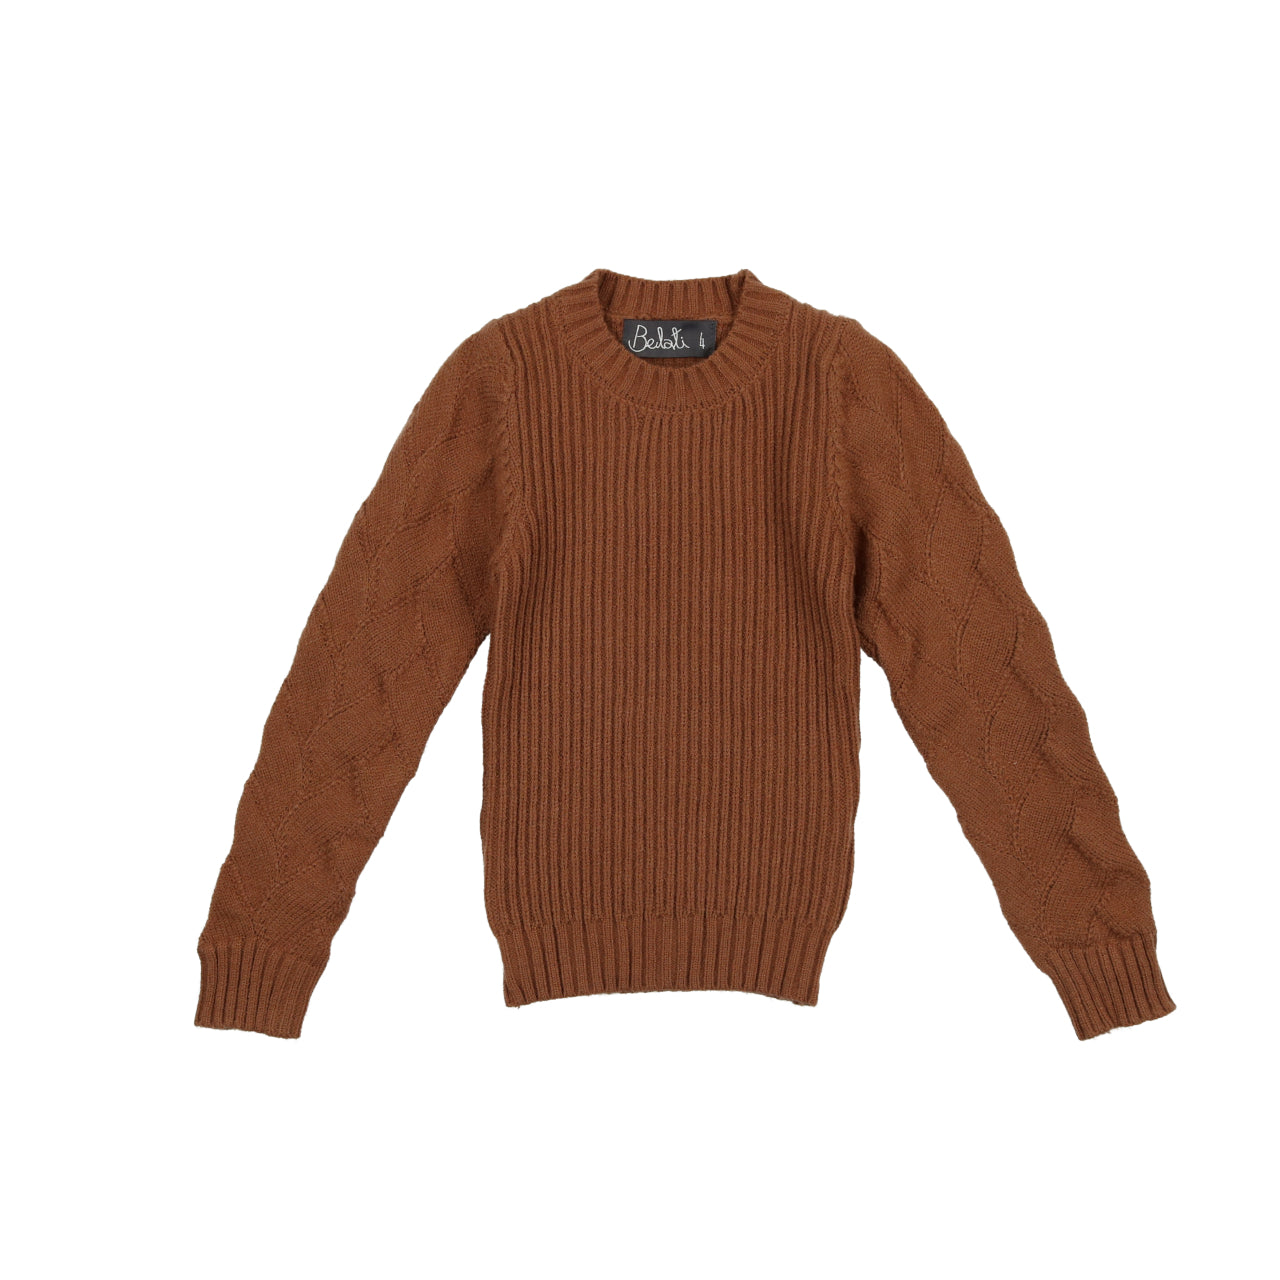 Belati Camel Textured Sleeve Knit Sweater